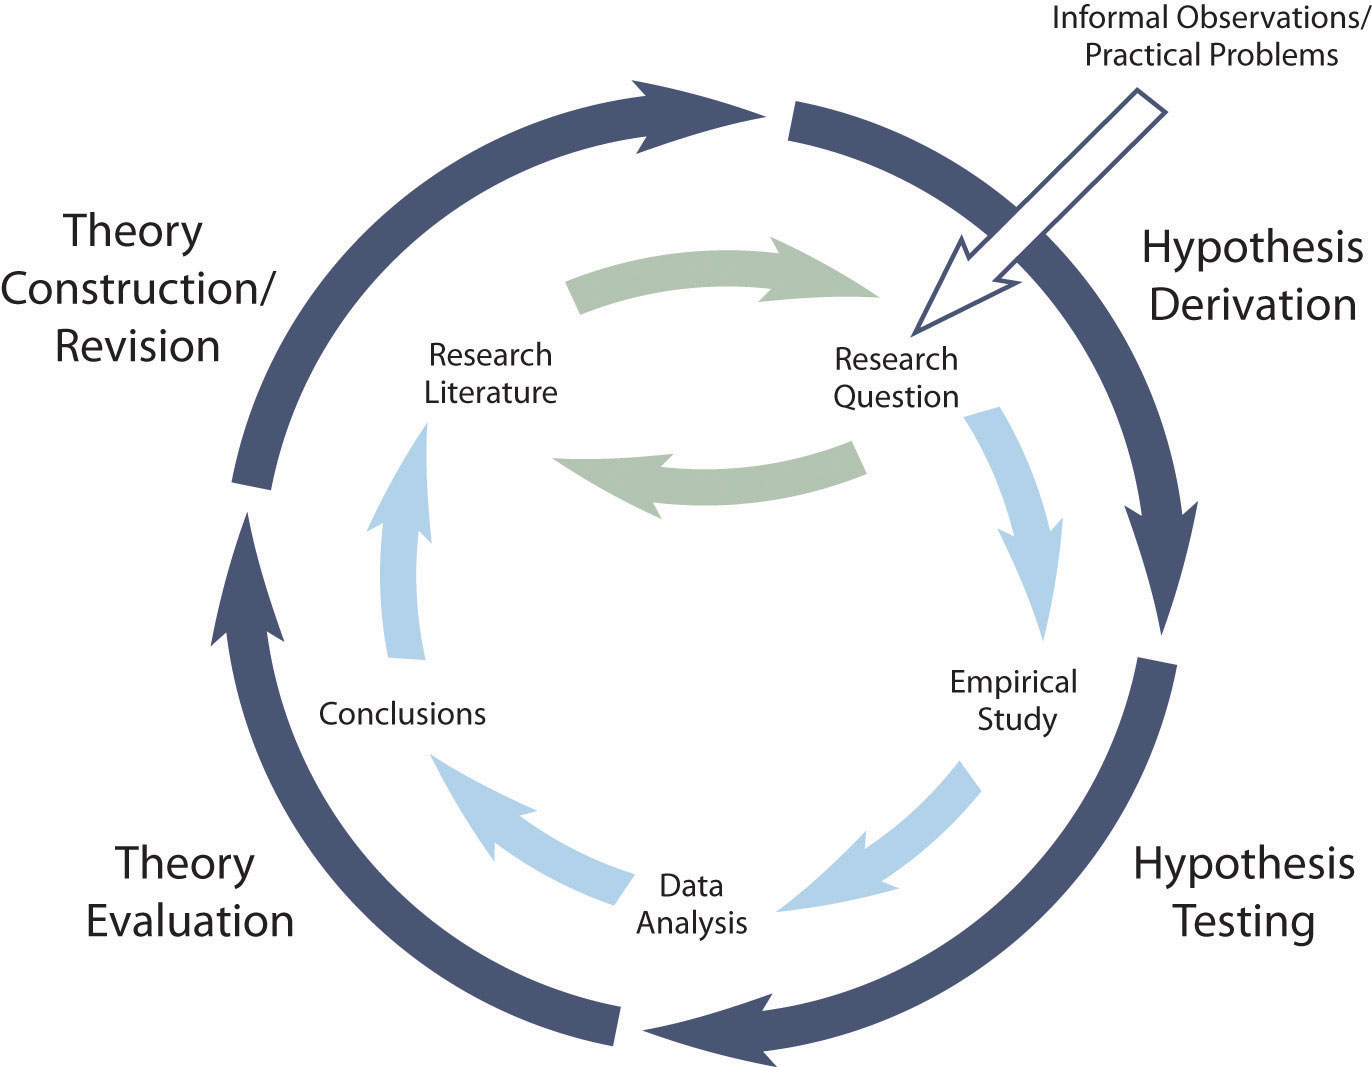 Hypothetico-Deductive Method Combined With the General Model of Scientific Research in Psychology